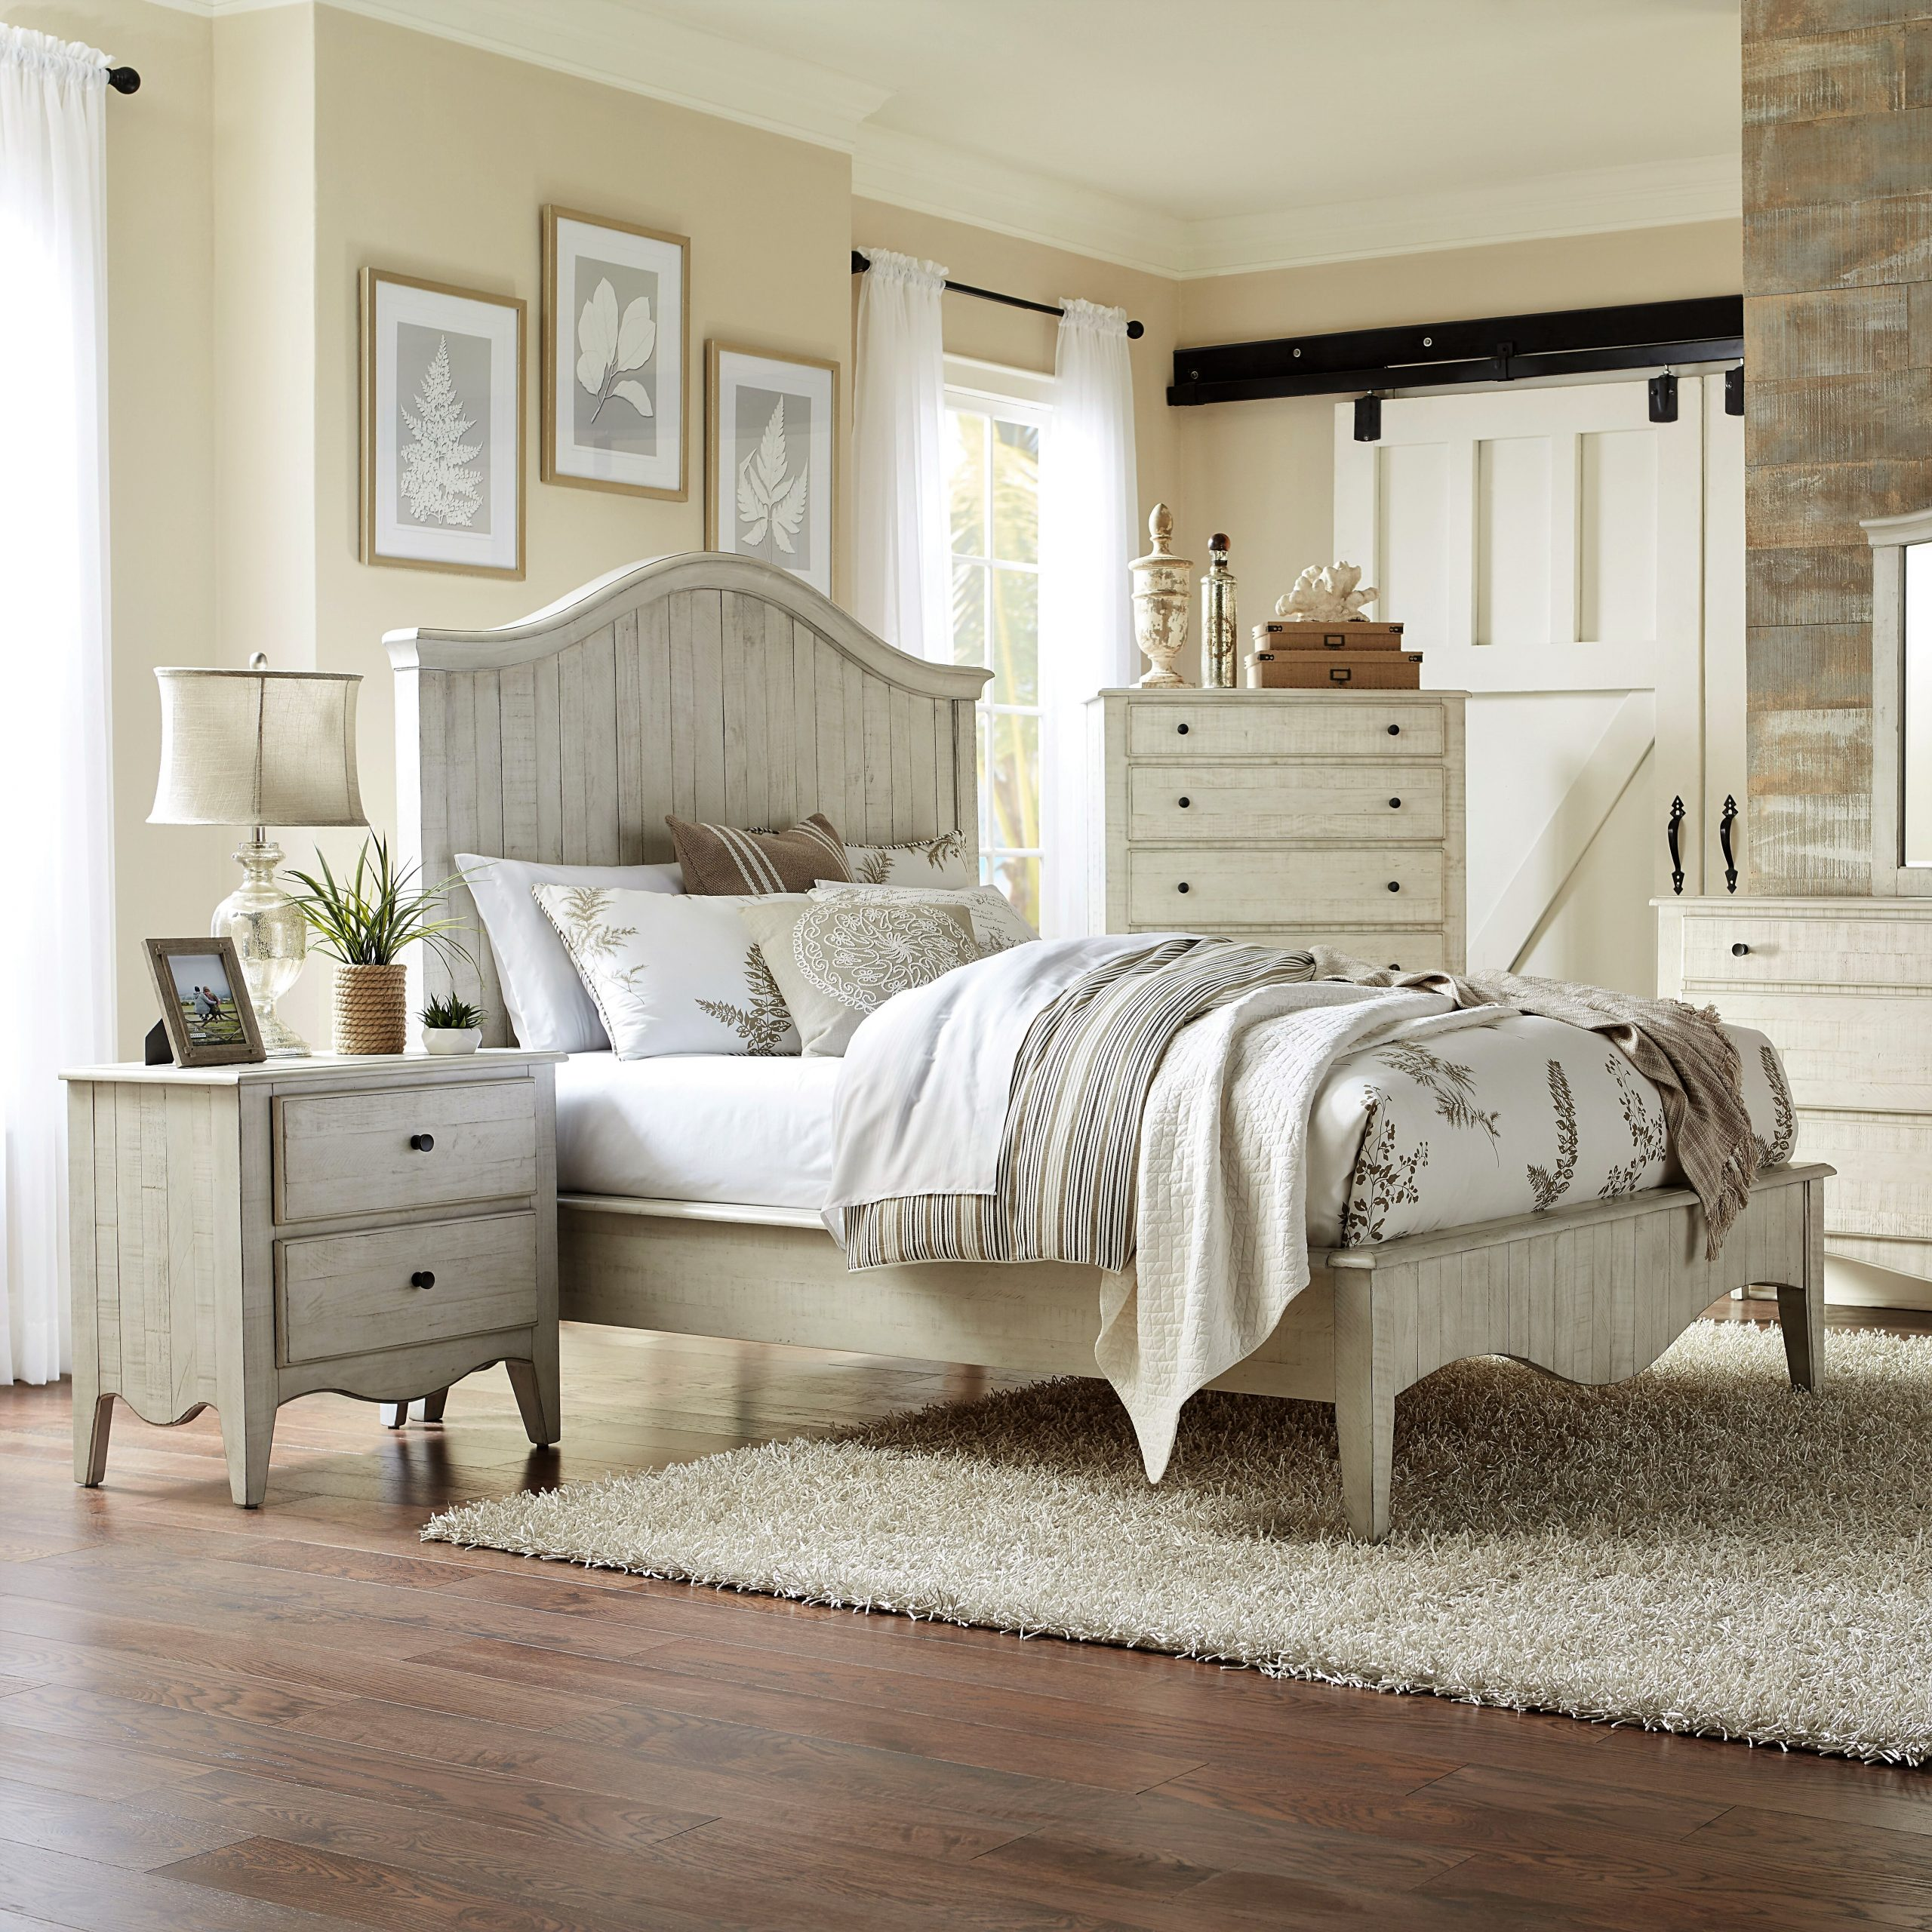 Ella White Rustic Bedroom Room Concepts